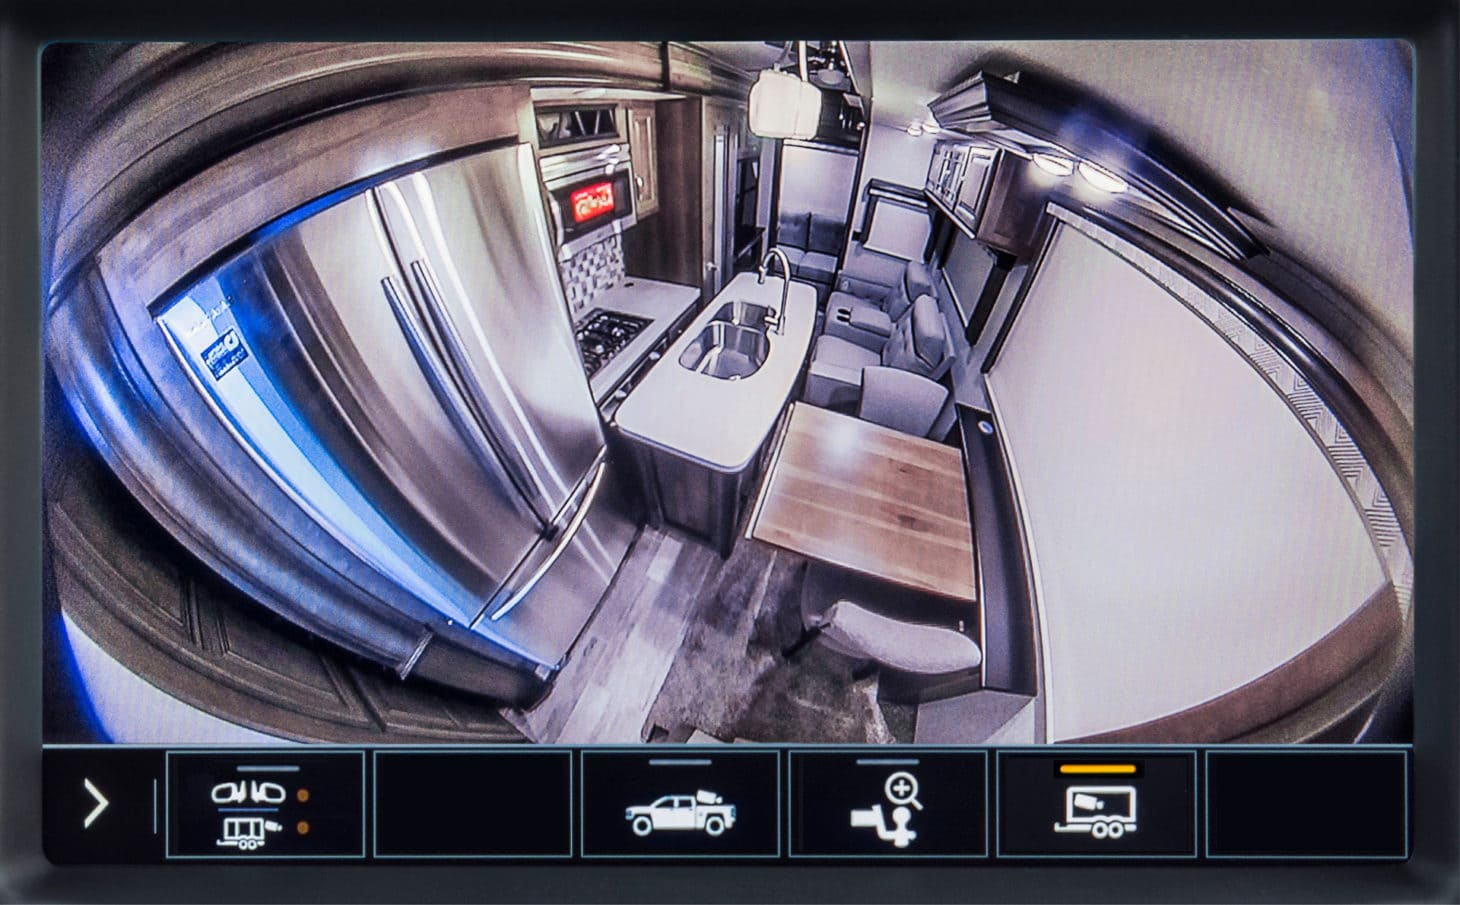 View of camera in pickup truck of attached travel trailer interior